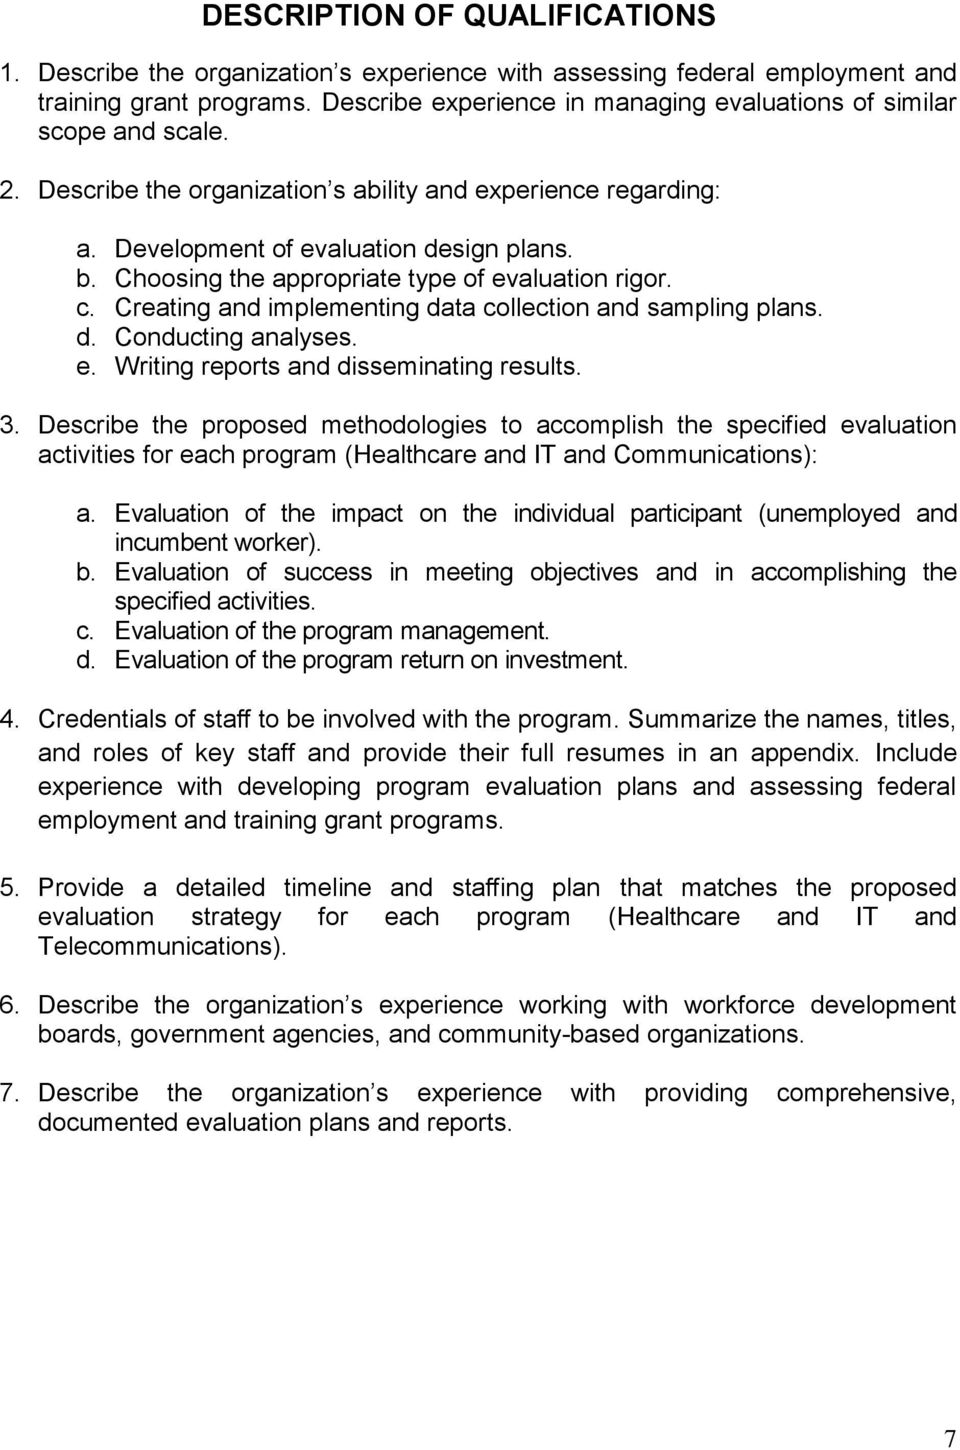 Choosing the appropriate type of evaluation rigor. c. Creating and implementing data collection and sampling plans. d. Conducting analyses. e. Writing reports and disseminating results. 3.